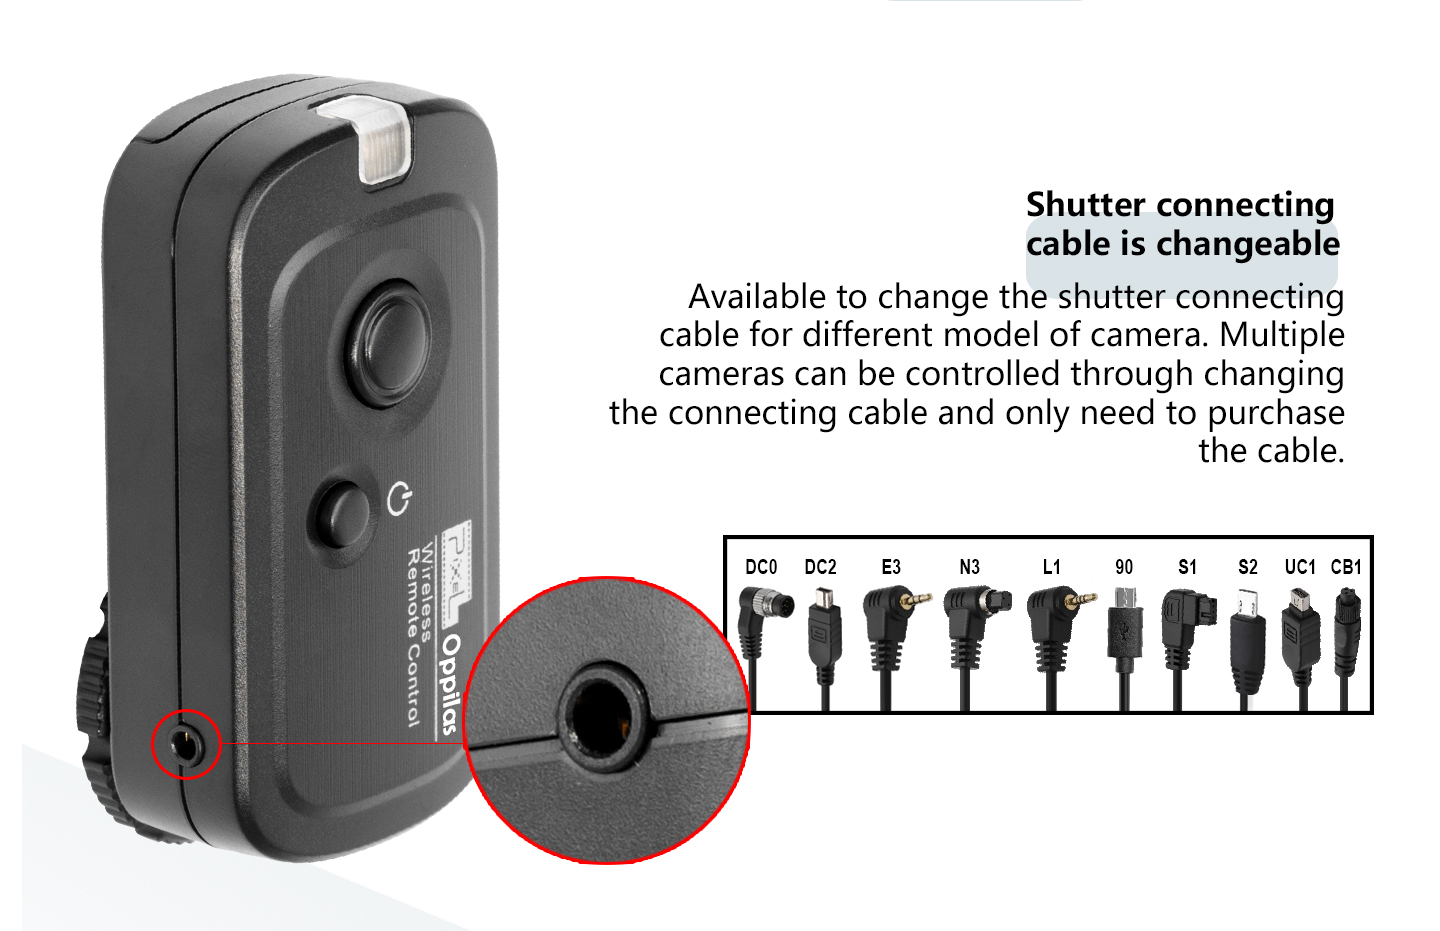 Shutter connecting cable is changeable